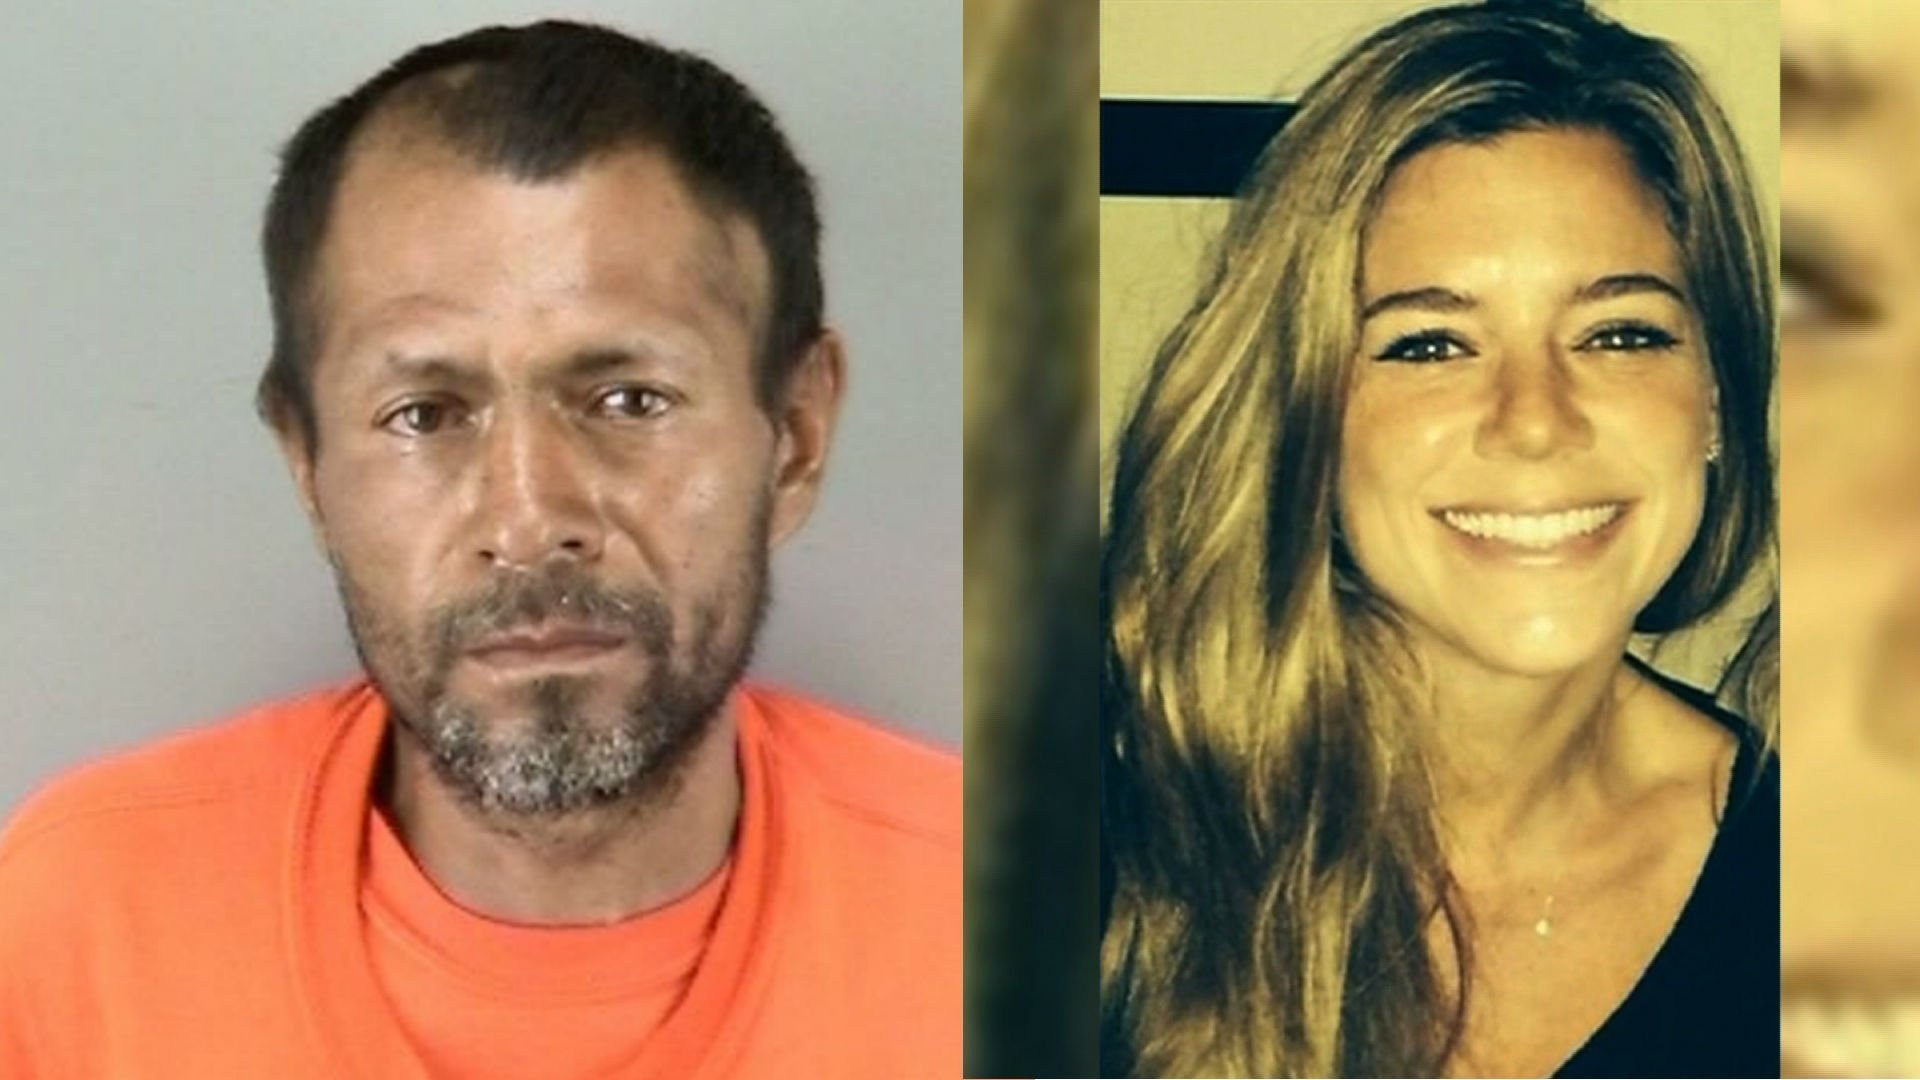 Jose Ines Garcia Zarate and Kate Steinle. courtesy photo.